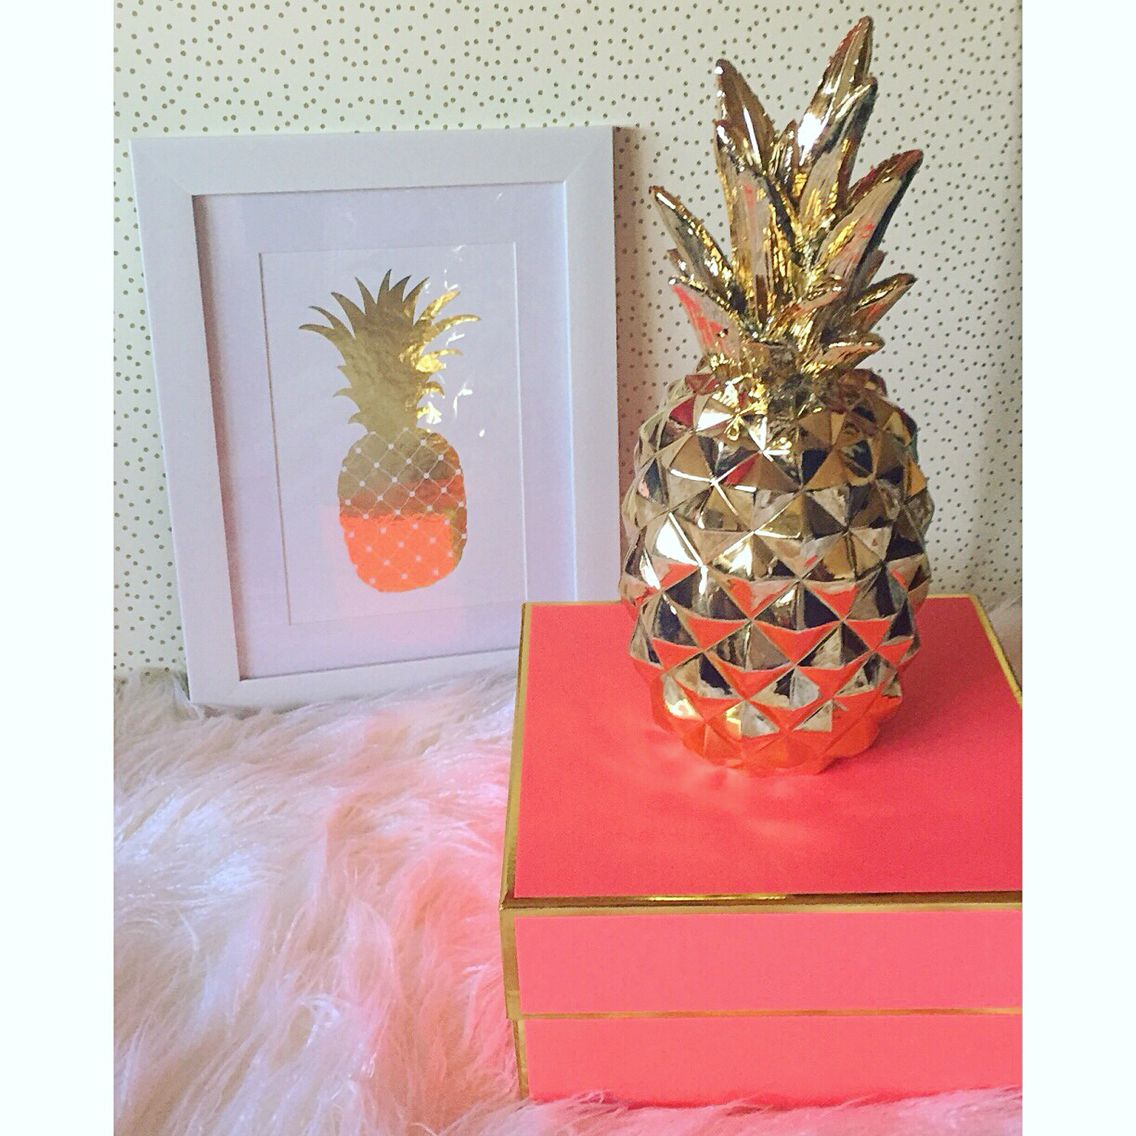 Pineapple Decorations For Kitchen 33 X 22 Sink Gold Decor And Coral Box Office